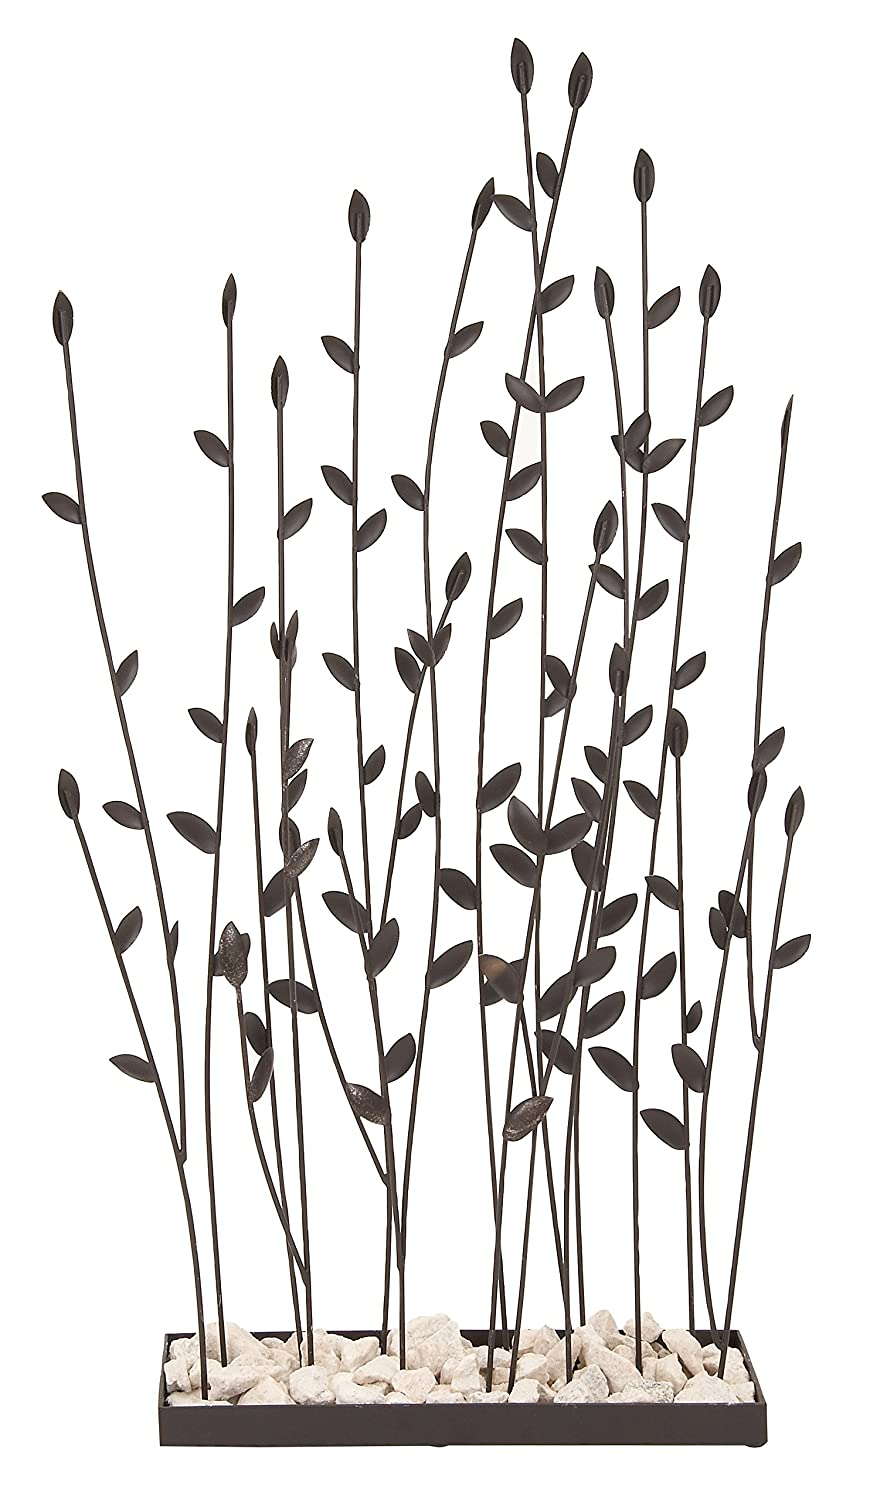 Deco 79 Metal Rocks Table Decor 31 by 14-Inch